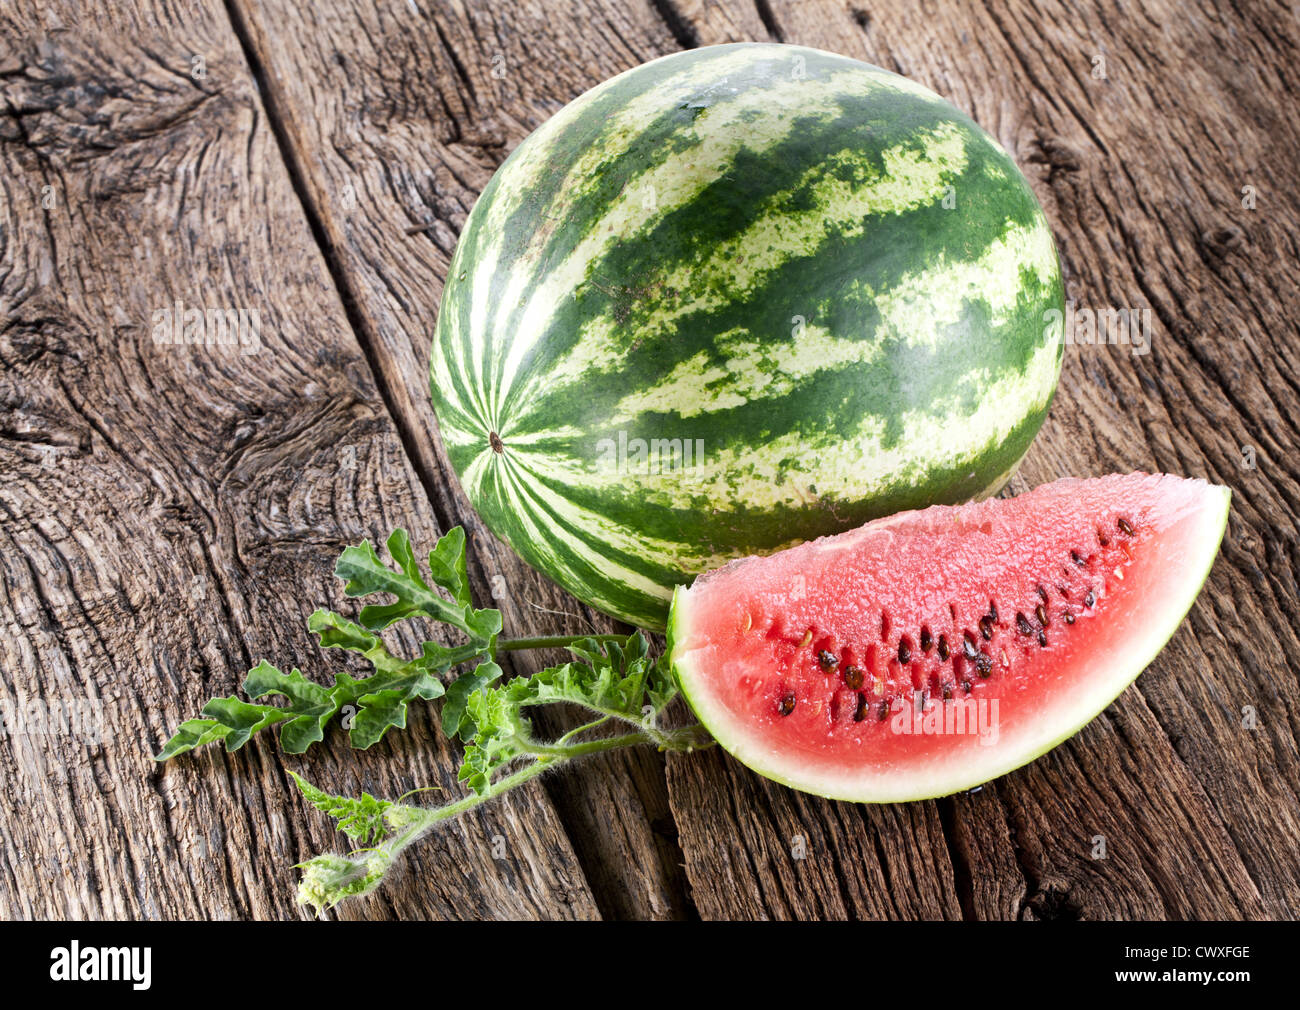 Watermelon with a slice and leaves on a wooden table. - Stock Image